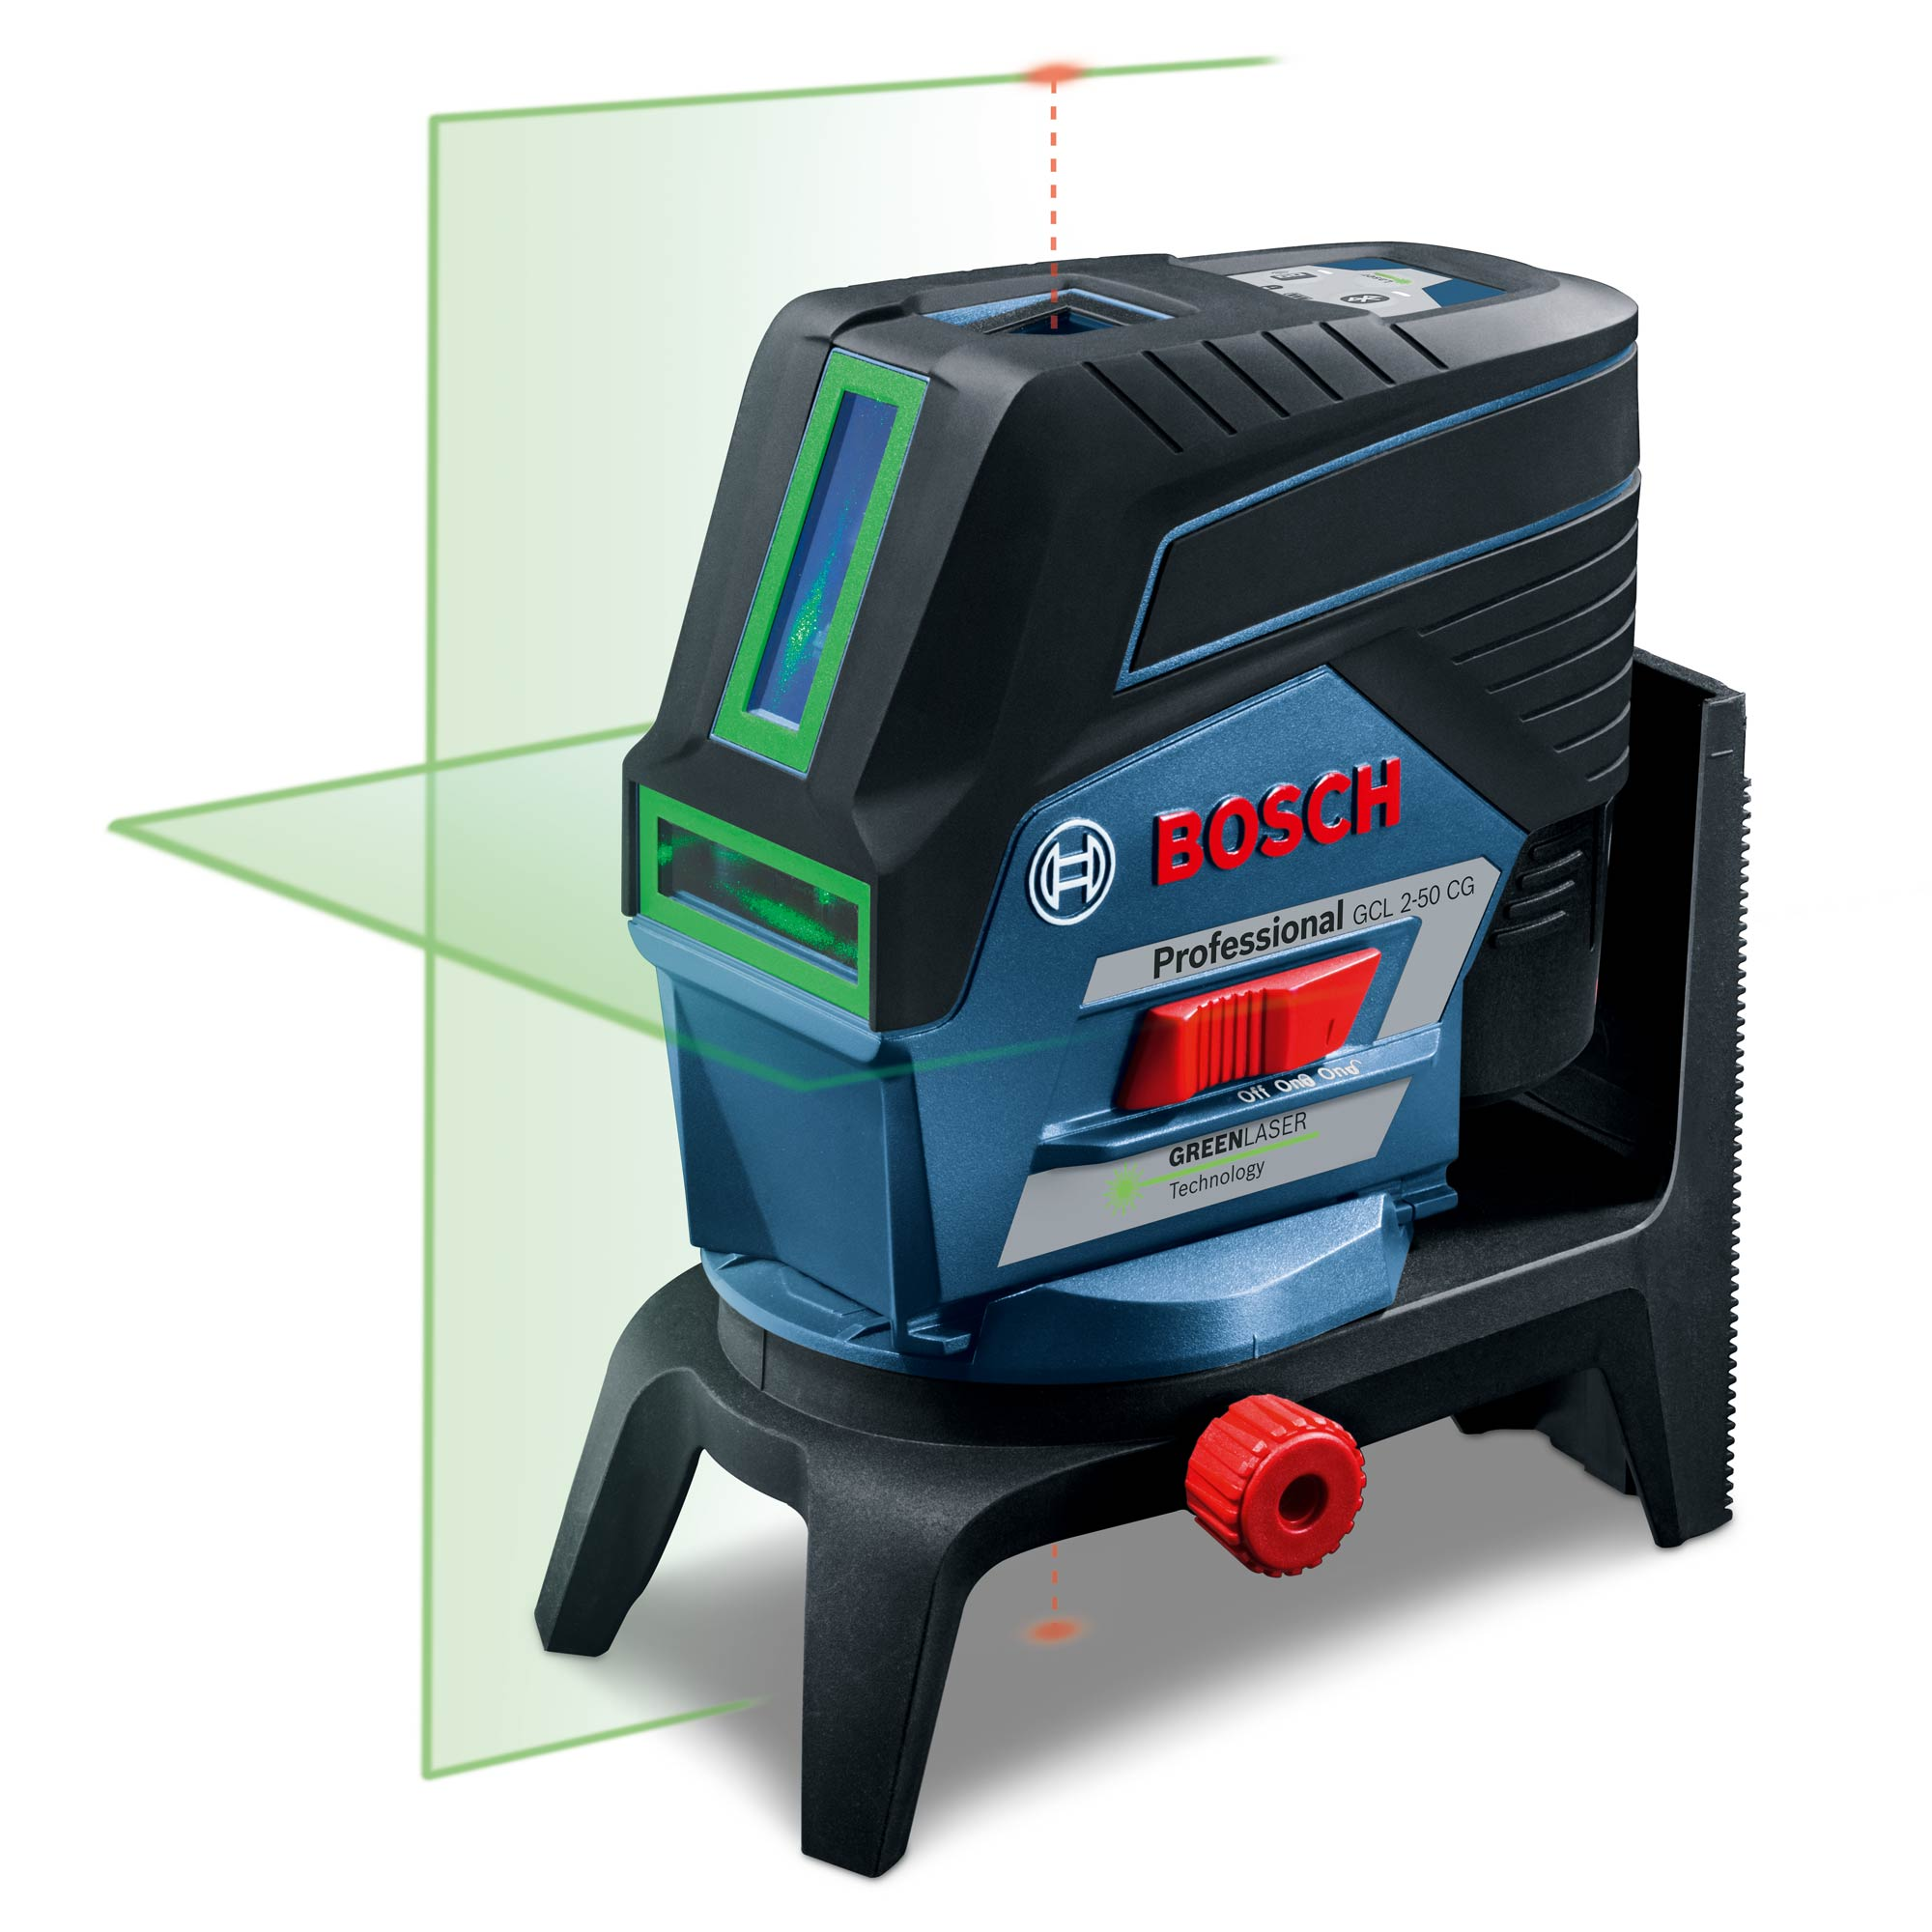 bosch gcl 2 50 cgb bosch gcl 2 50 cg professional green beam line laser. Black Bedroom Furniture Sets. Home Design Ideas